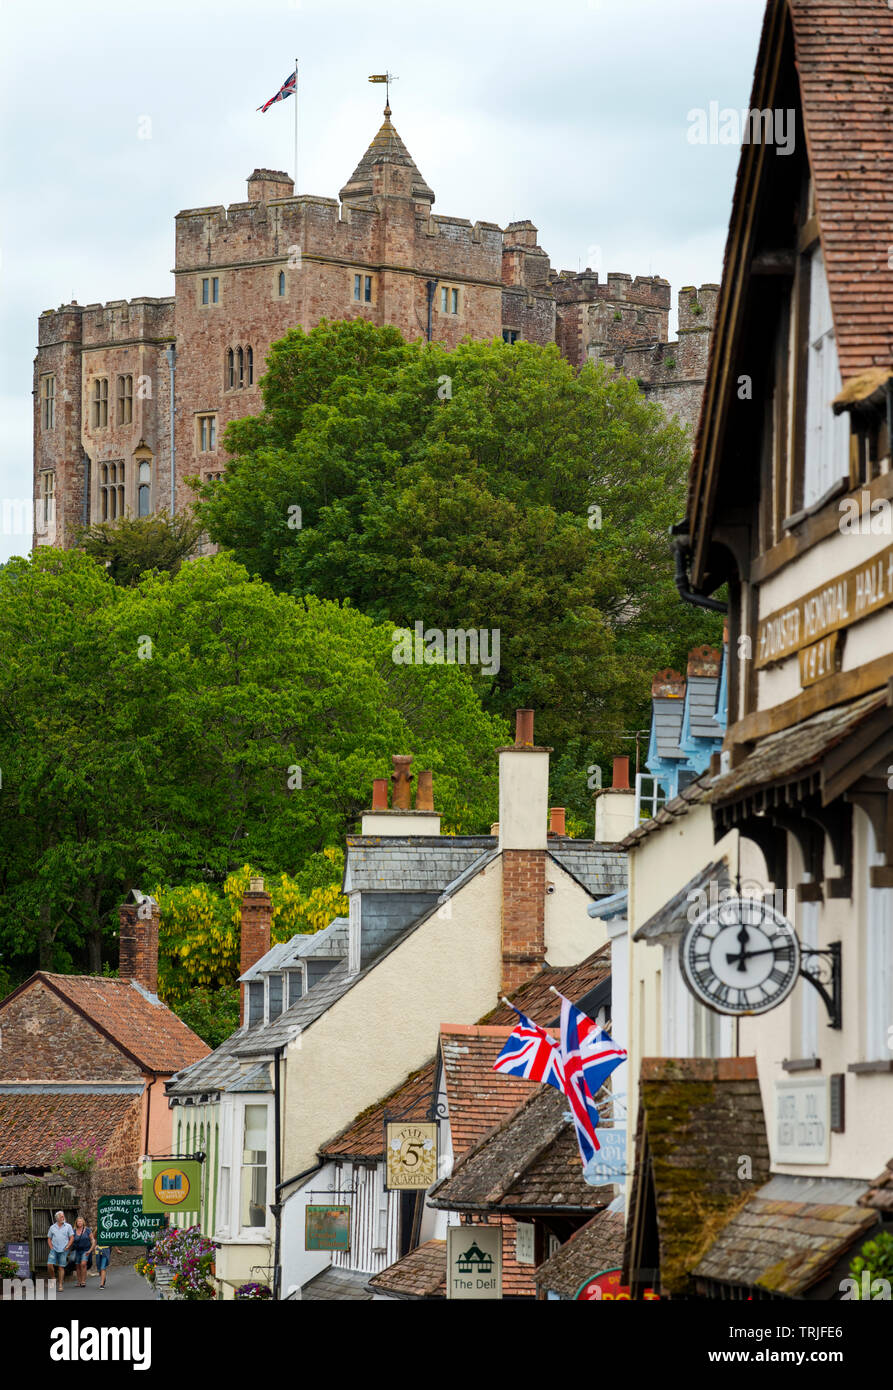 Dunster Exmoor Somerset England UK. May 2019 Showing Dinster Castle and Yarn Market Dunster is a village, civil parish and former manor within the Eng Stock Photo